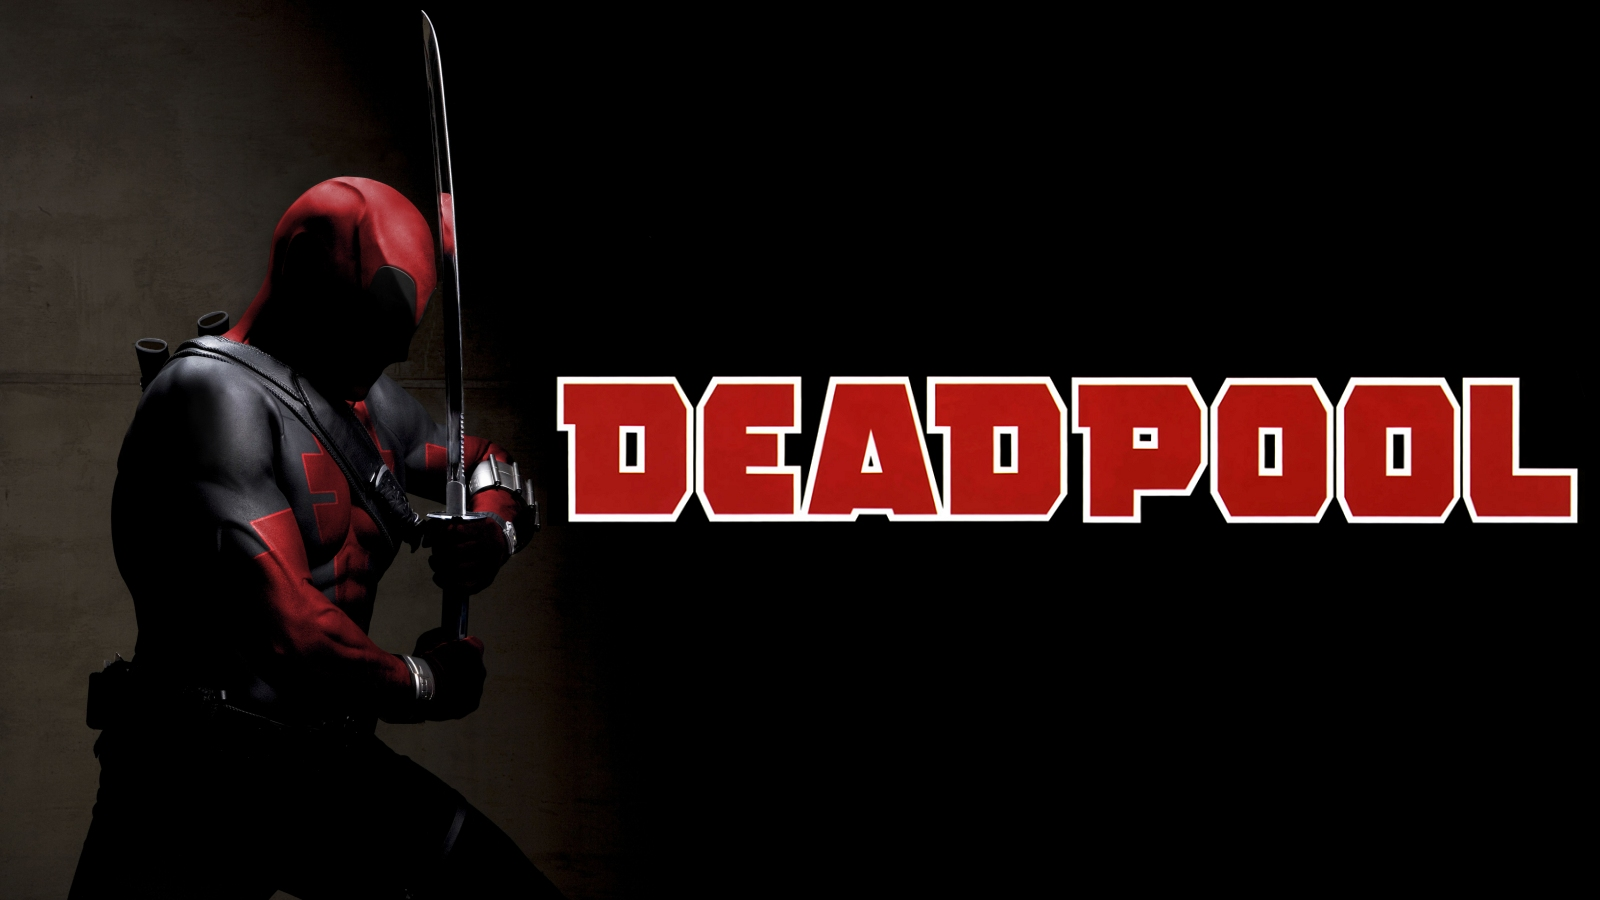 November 9 2015 By Stephen Comments Off on Deadpool Movie Wallpaper 1600x900